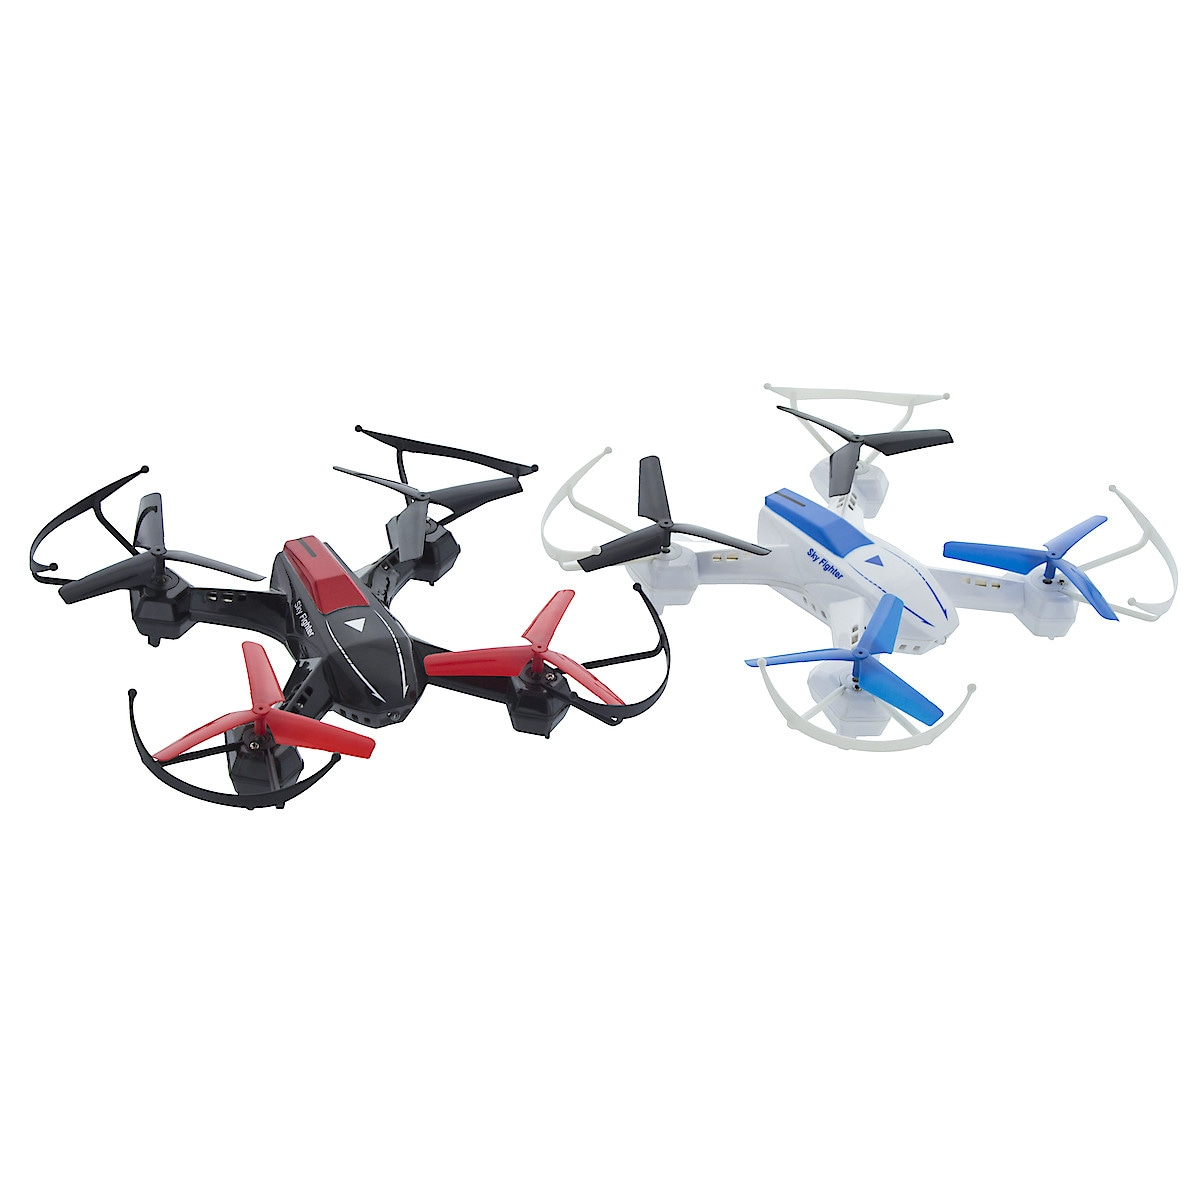 Combat drone, twin pack